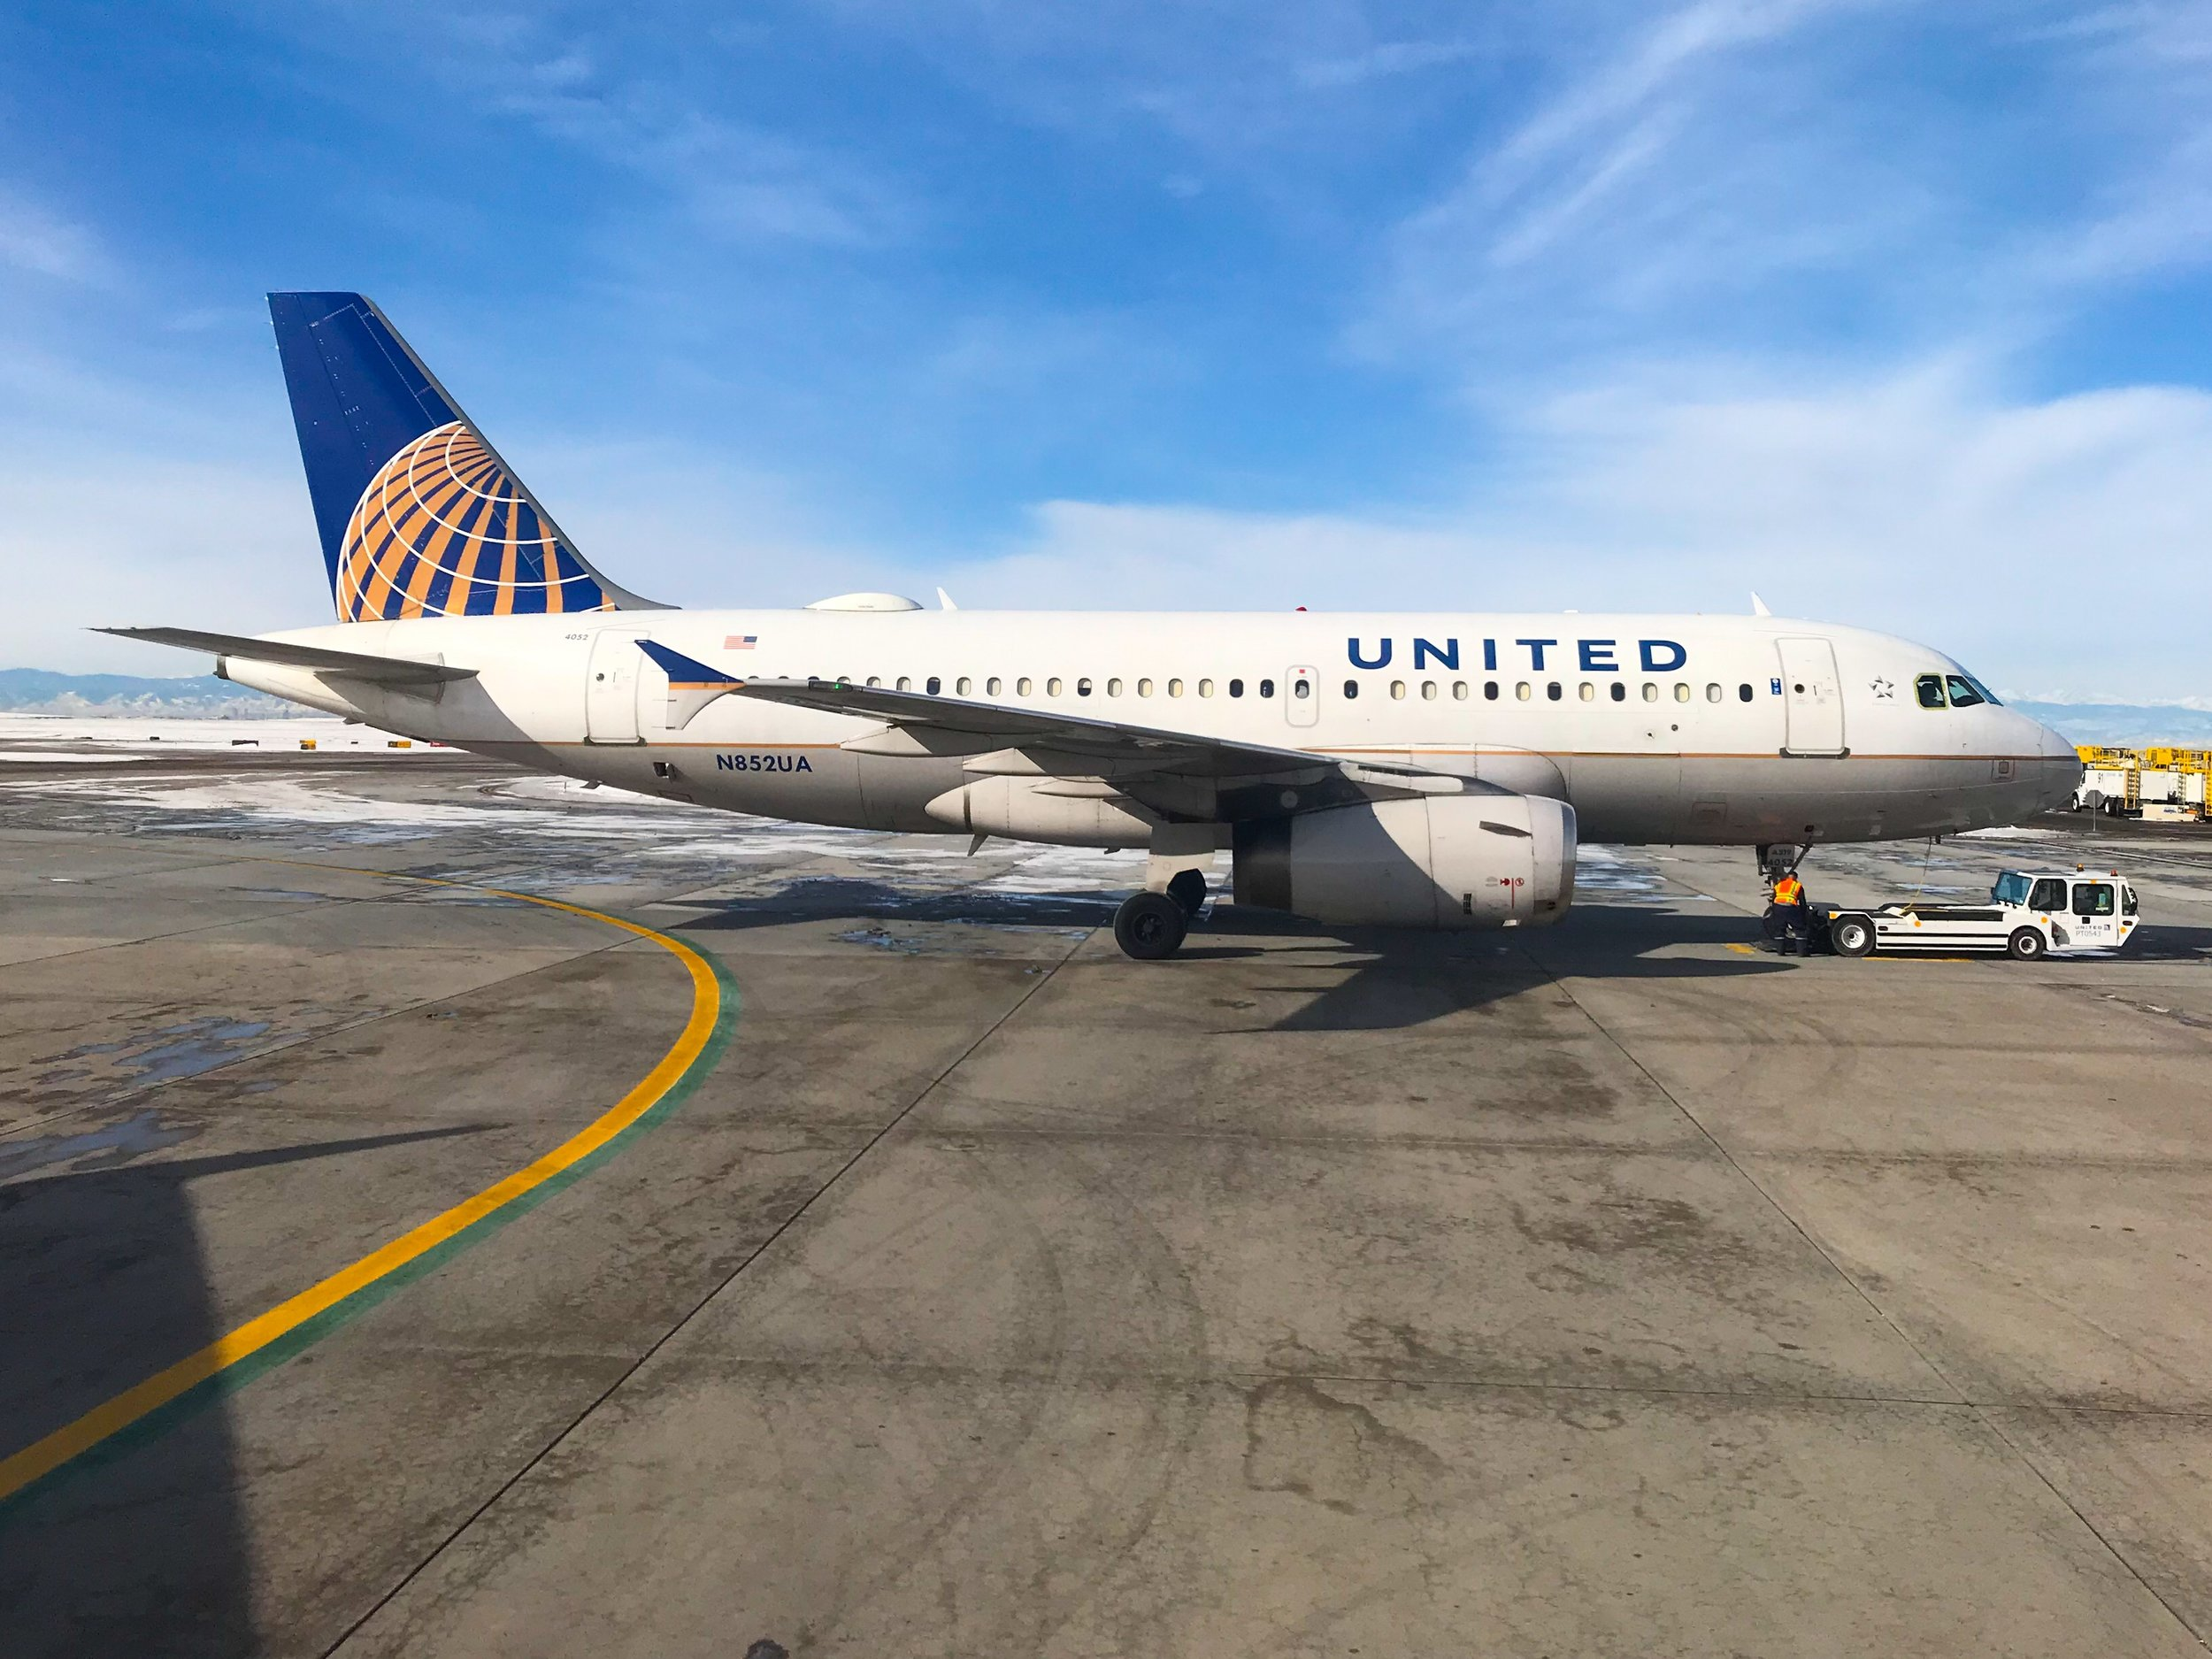 AIRCRAFT TYPE - United and its regional affiliates operate over a dozen different aircraft types.